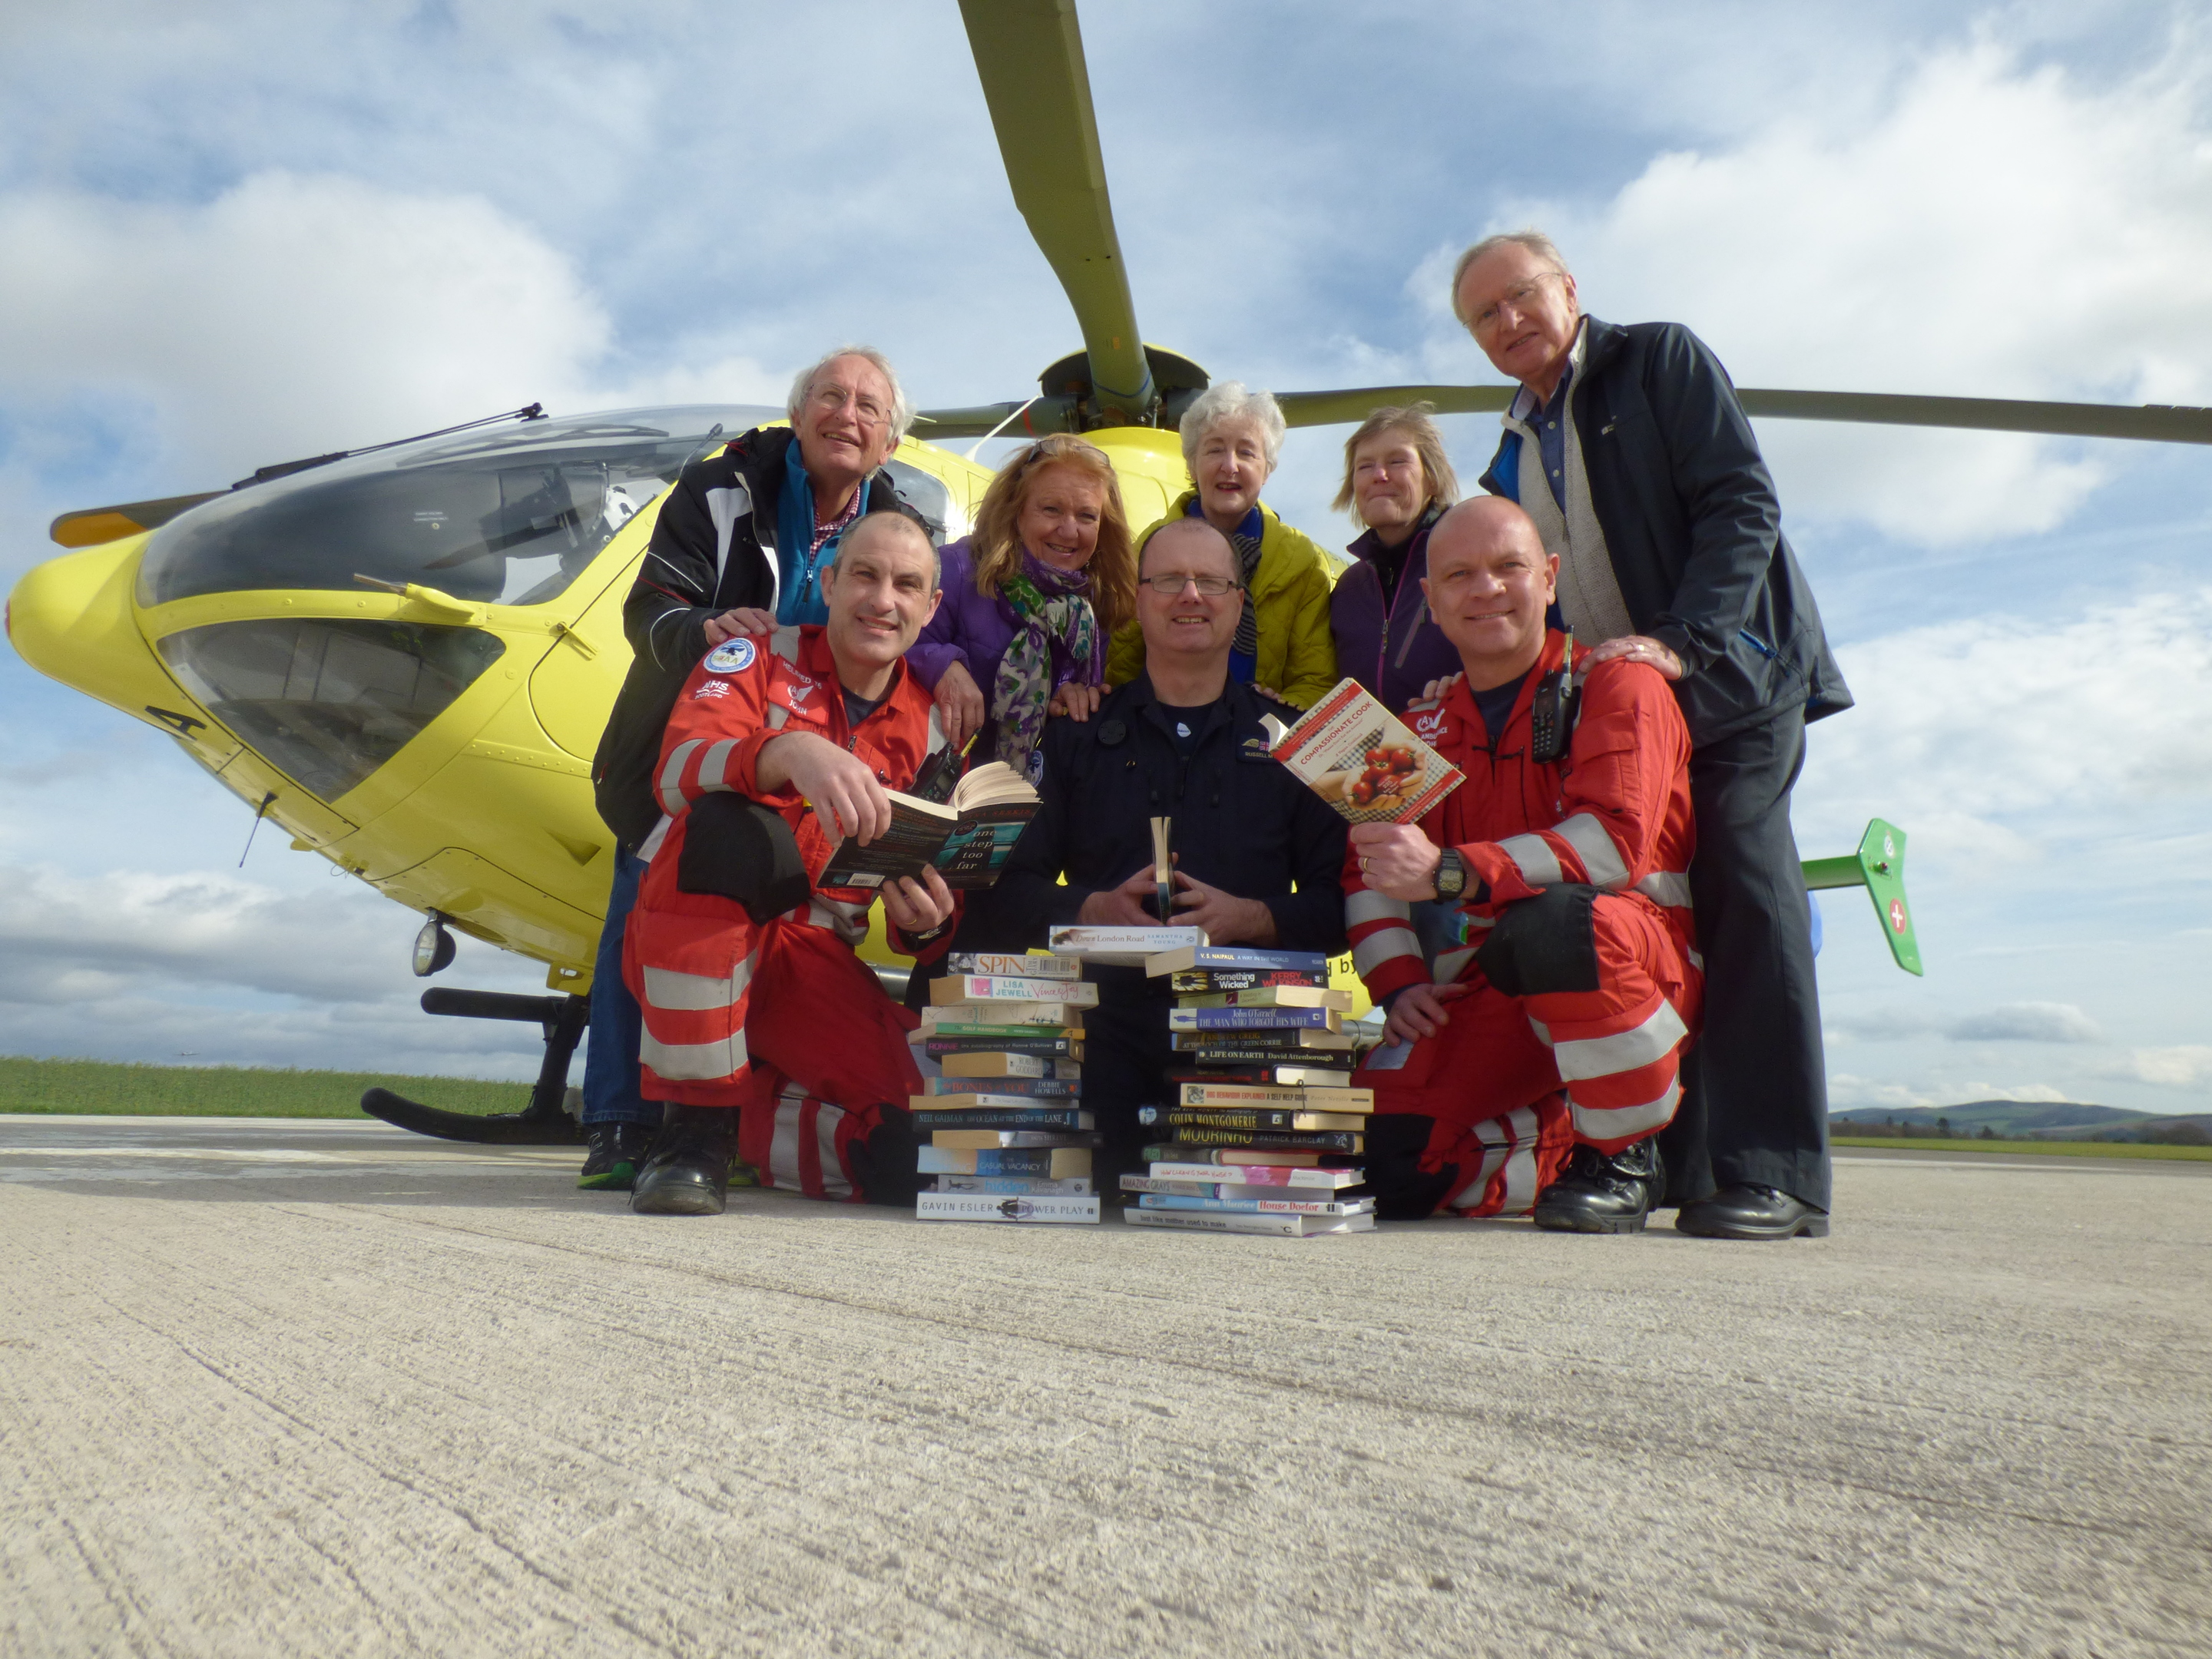 Volunteers from the Pitlochry Station Bookshop were invited to visit the Scotland's Charity Air Ambulance base at Perth Airport to meet the people involved in both the frontline emergency response team and the charity team.